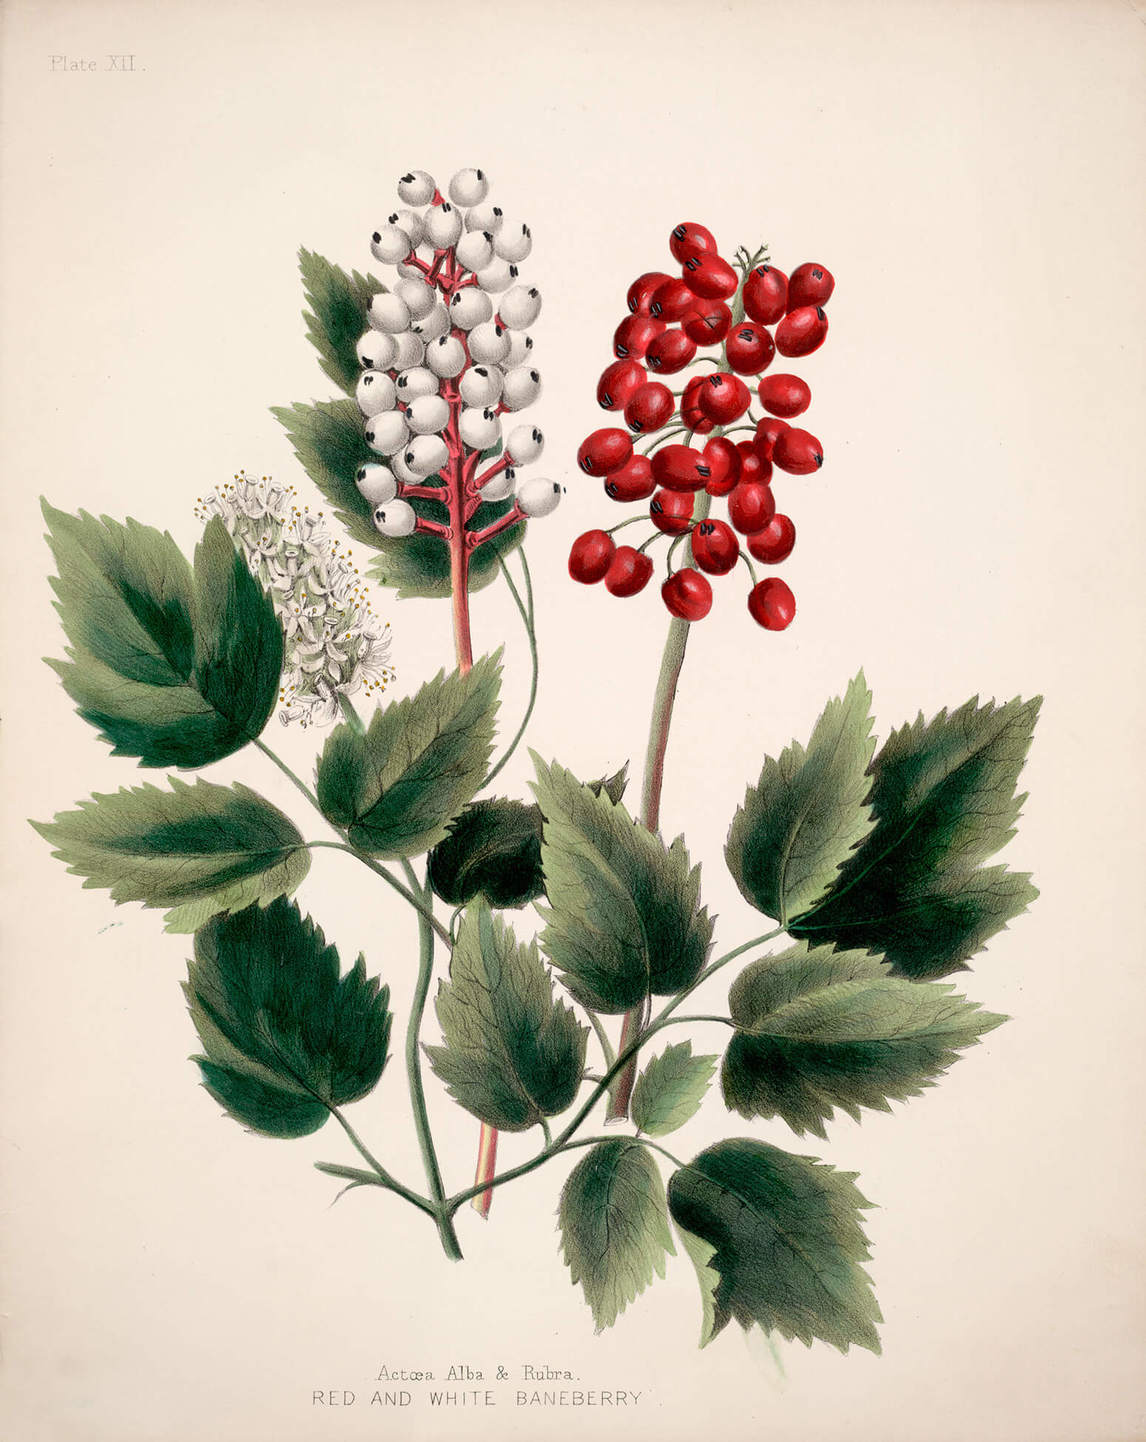 Maria Frances Ann Morris Miller, Actoea Alba and Rubra, Red and White Baneberry, 1853